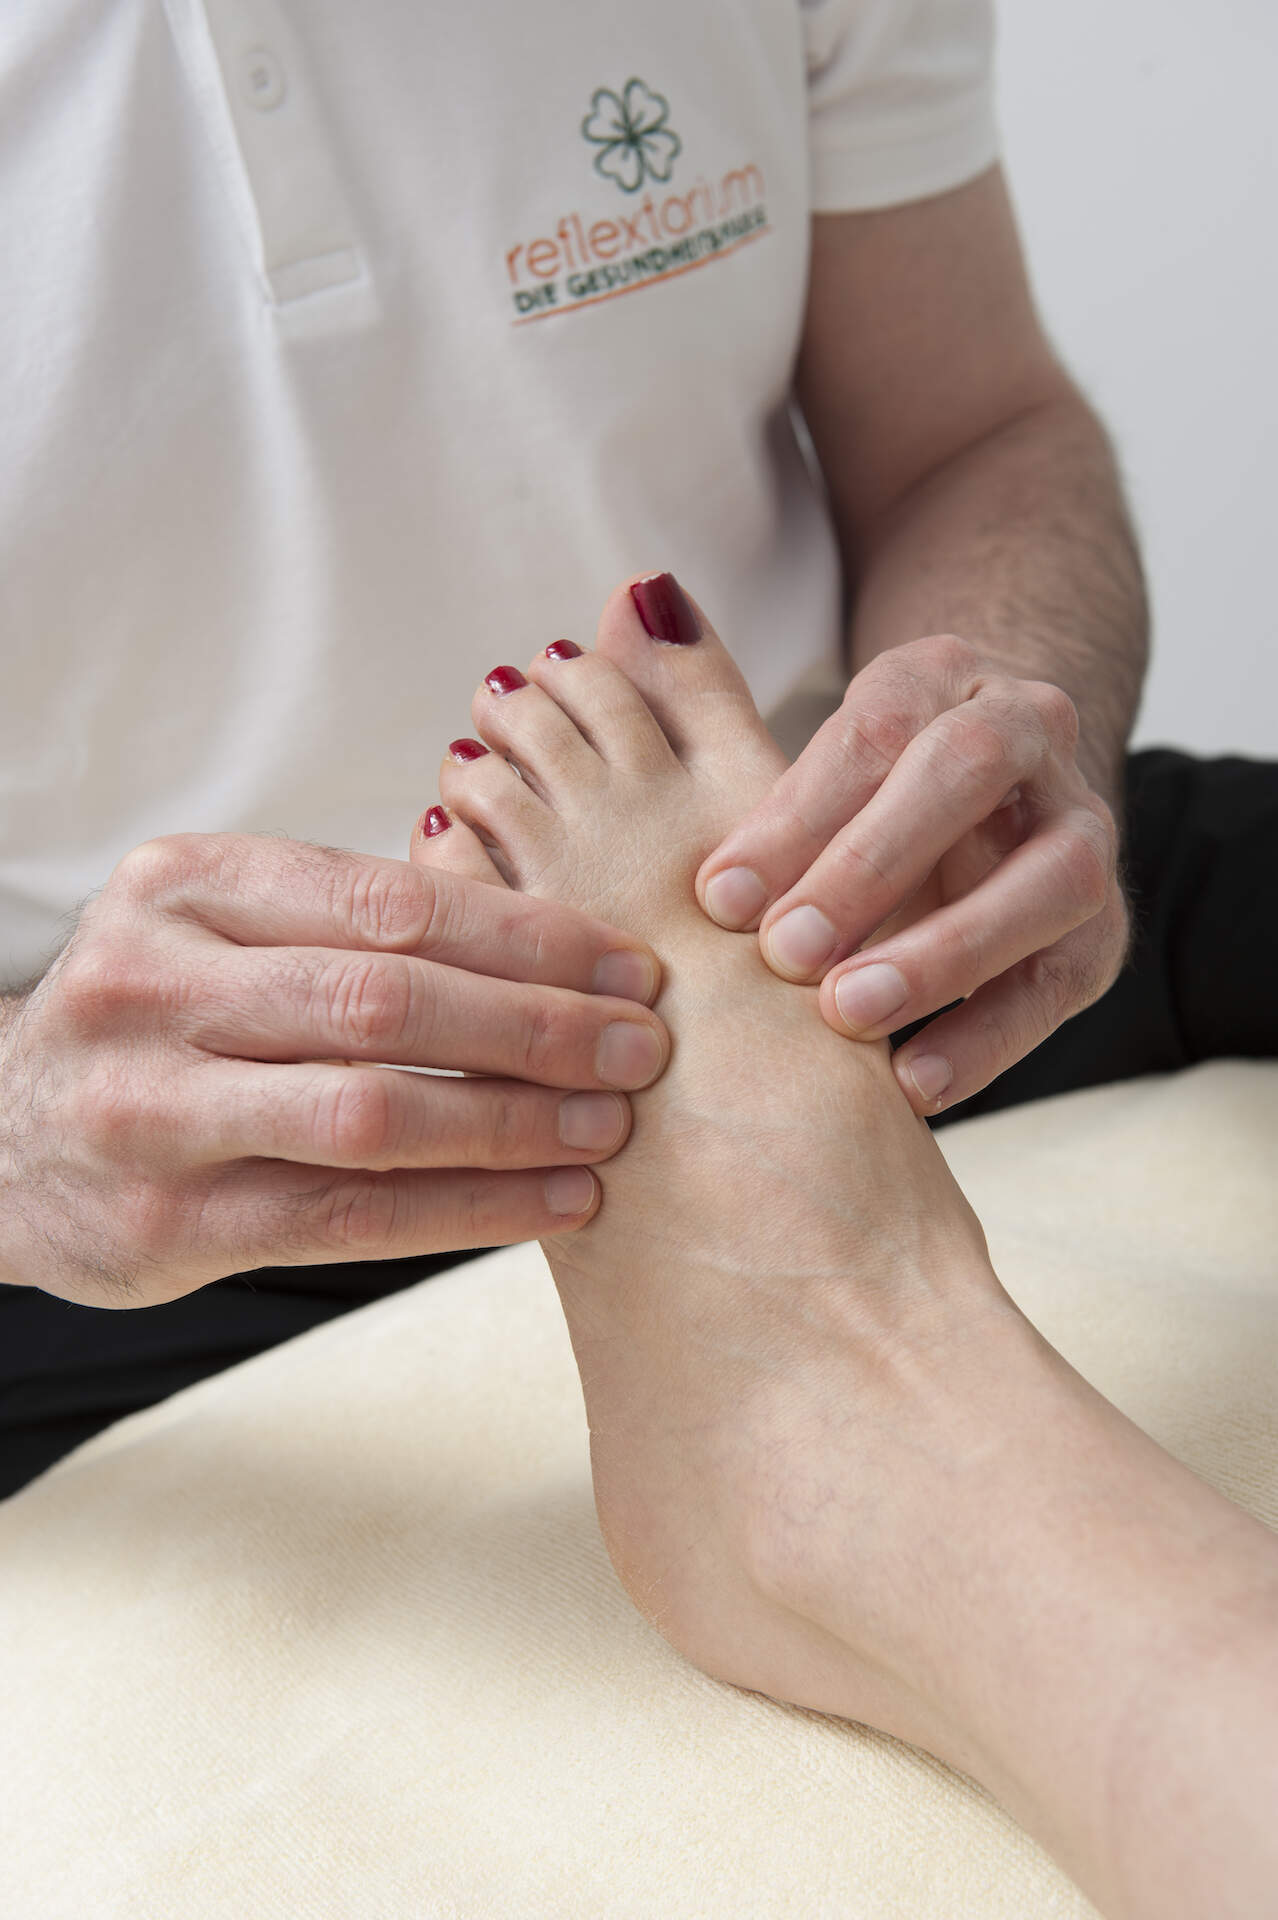 Foot Reflex Zone Massage - relaxing and balancing